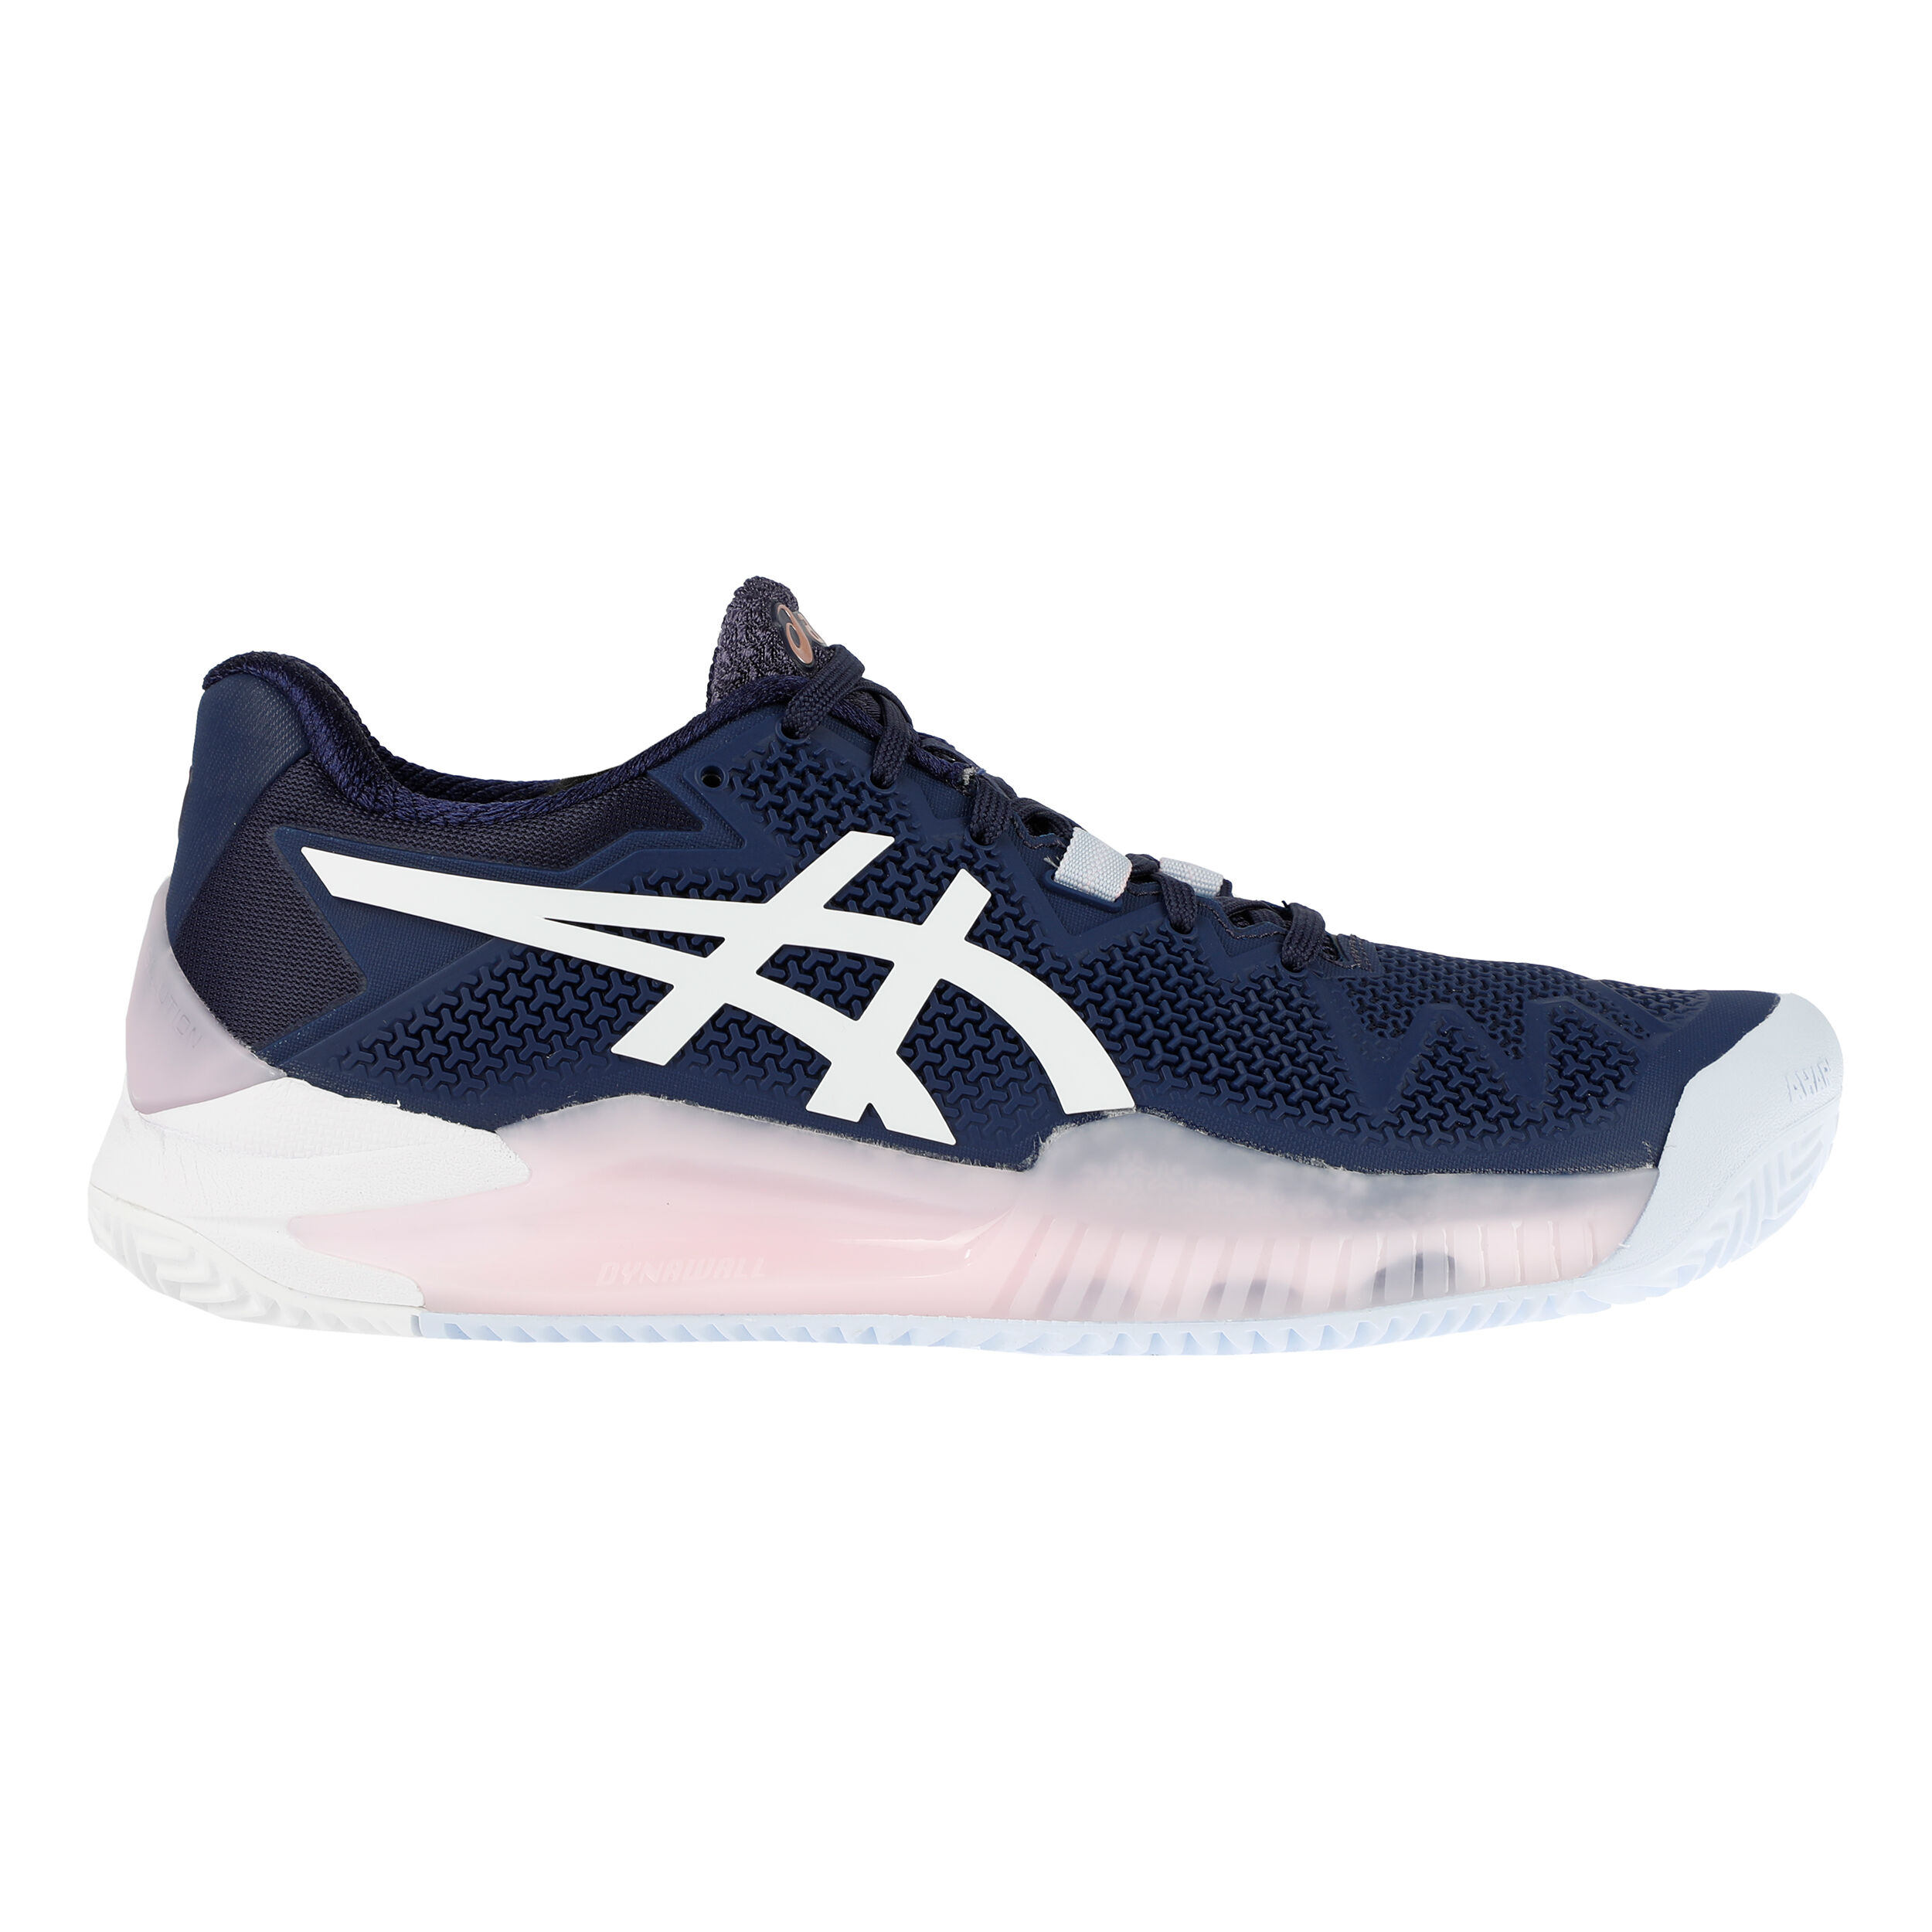 Asics Gel-Resolution 8 Clay Sandplatzschuh Damen - Dunkelblau, Weiß